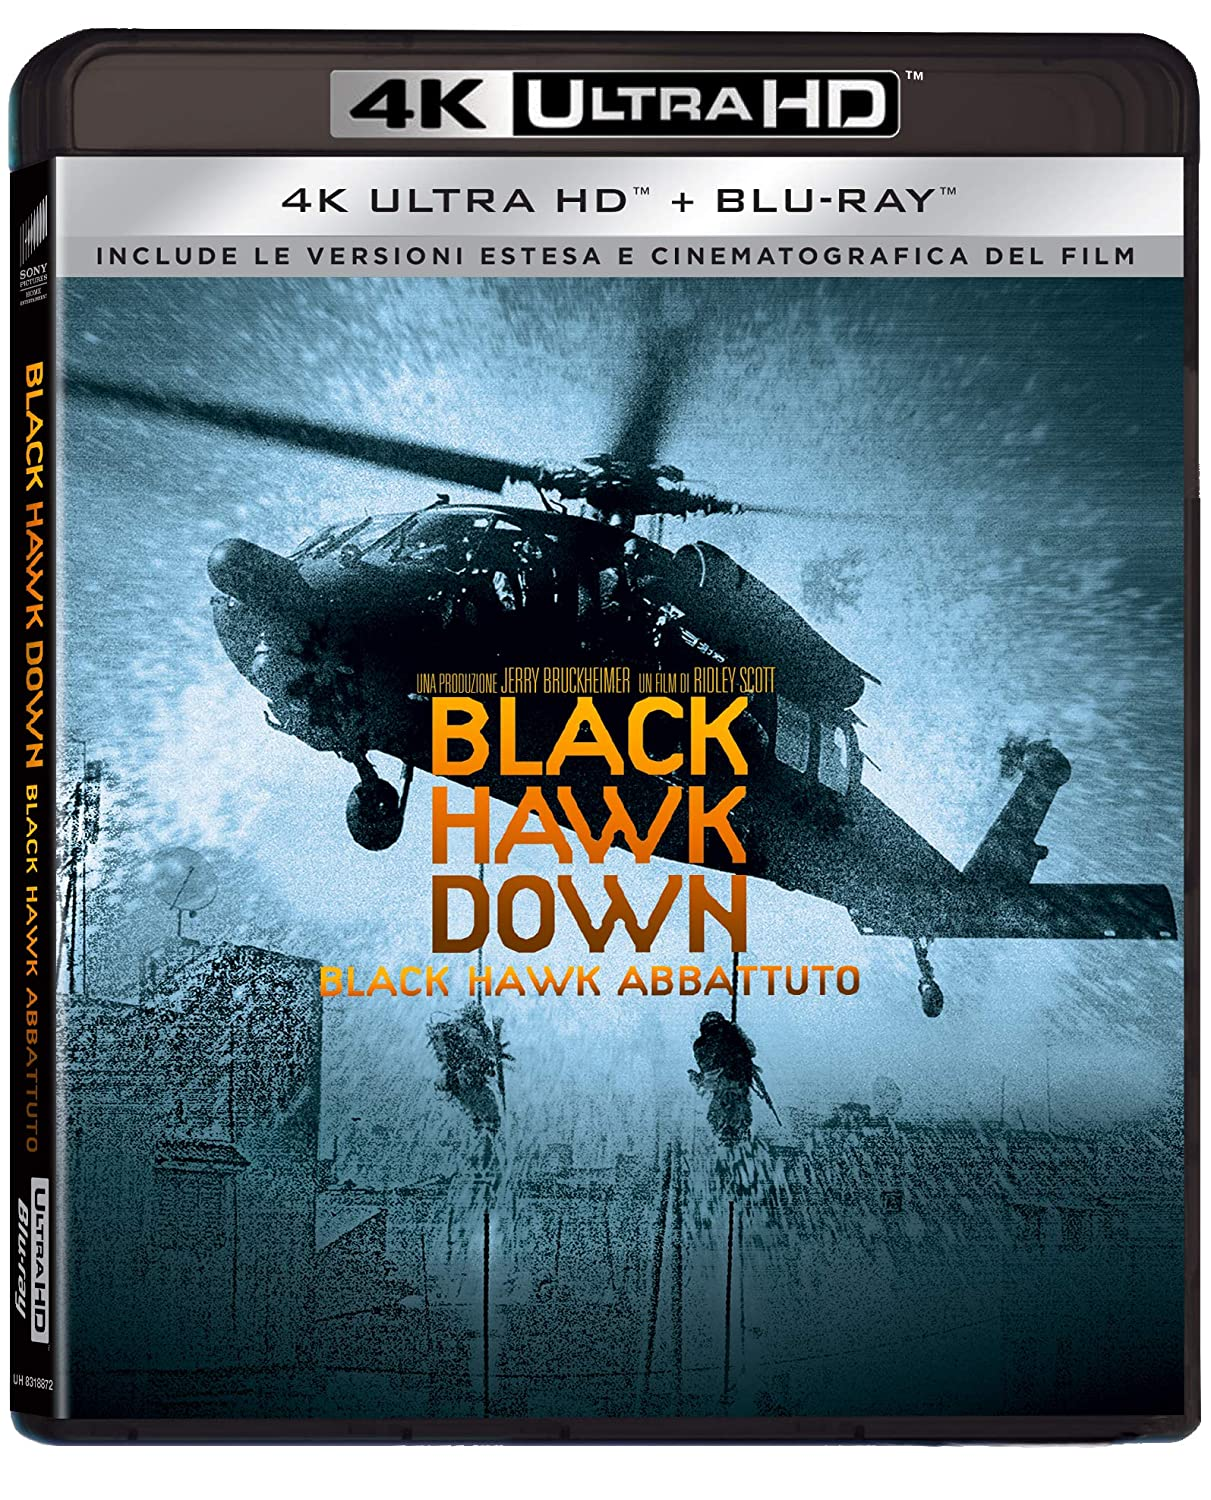 BLACK HAWK DOWN (4K UHD+BLU-RAY)